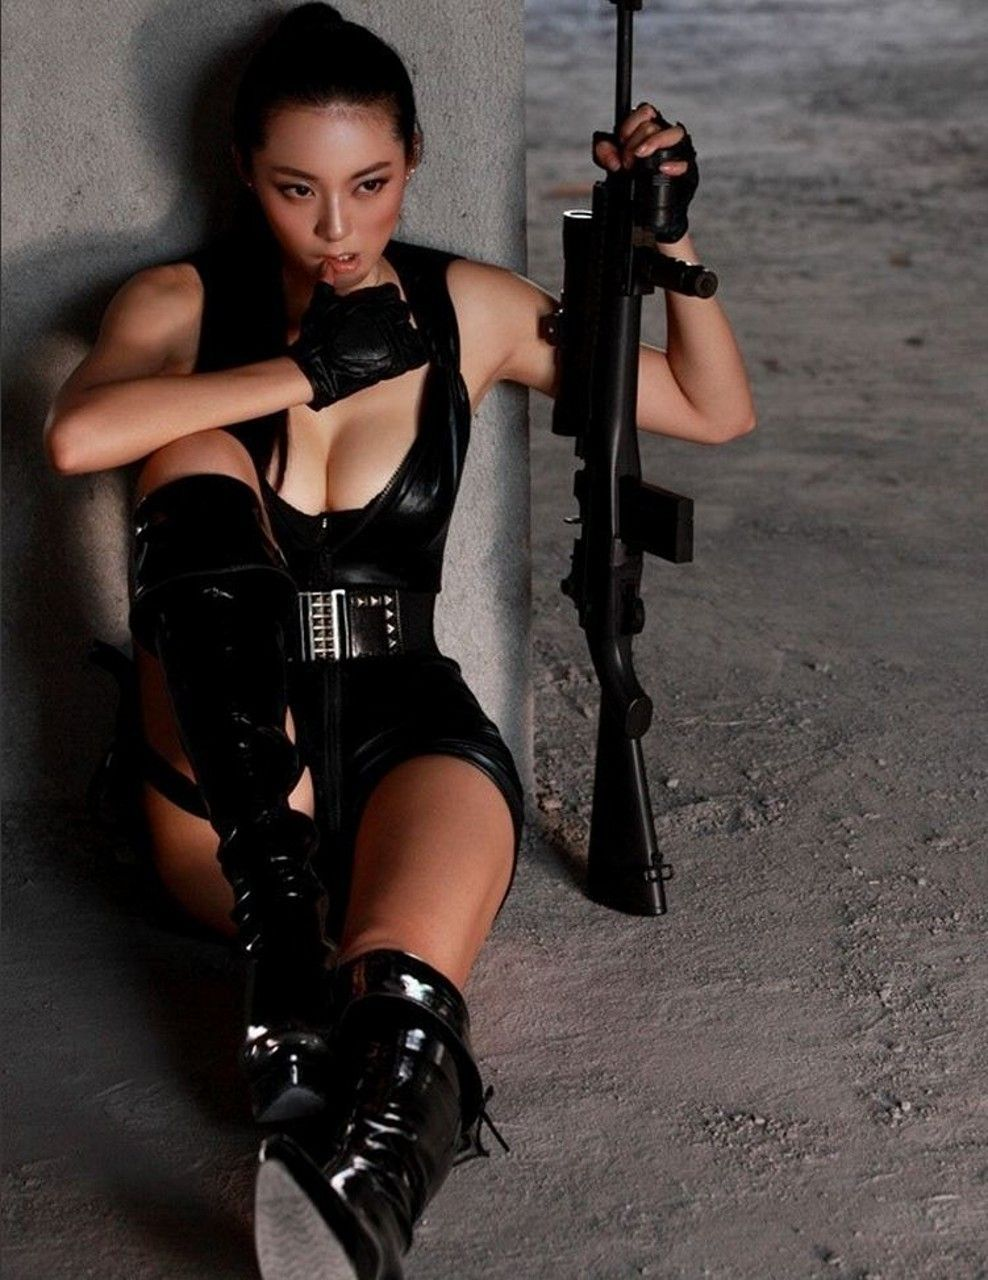 Asian with hot guns girls